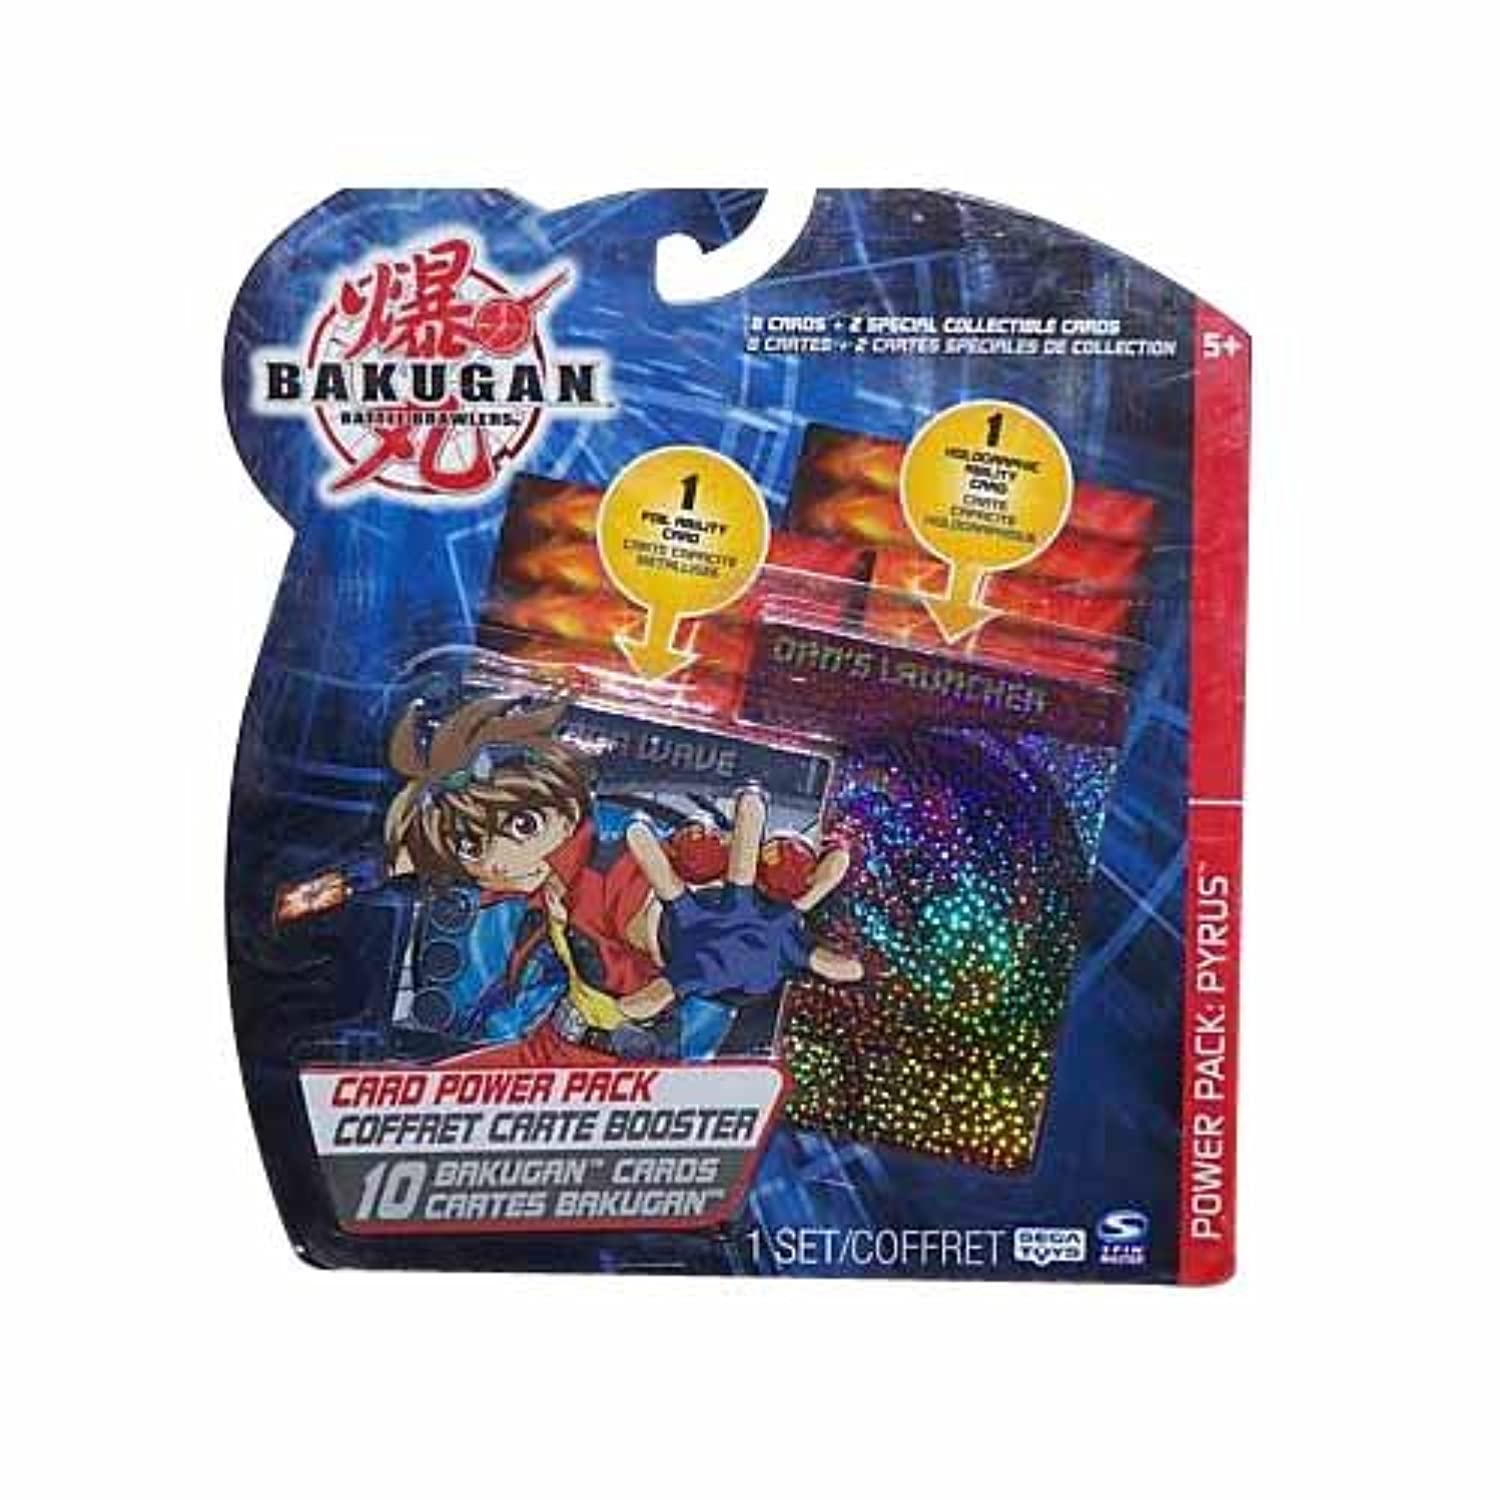 BAKUGAN BATTLE BRAWLERS 10 CARD POWER PACK: PYRUS (ASSORTED CARDS/WILL VARY)